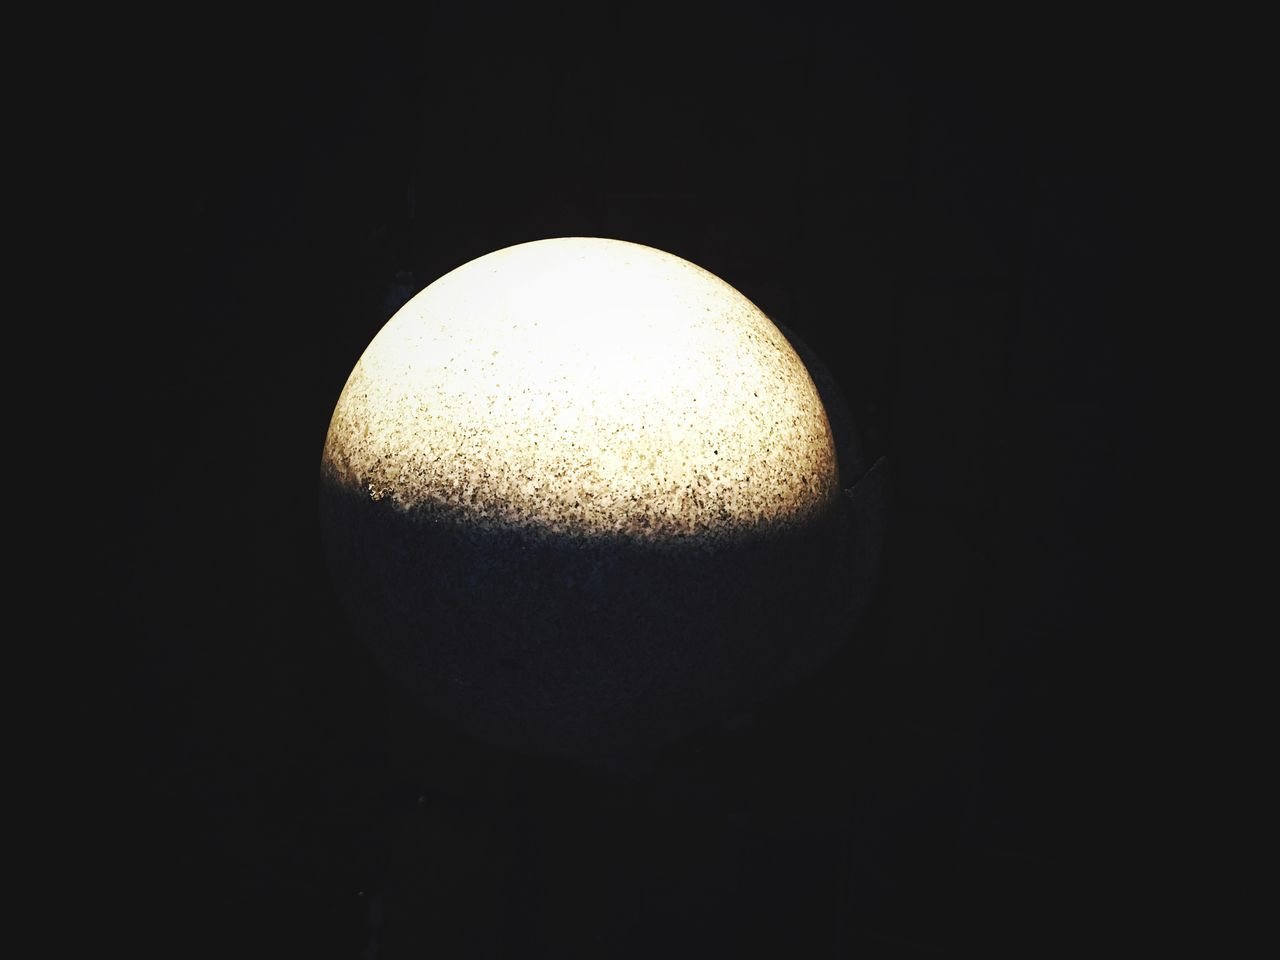 EyeEmNewHere Black Background Yellow Moon EyeEmBestPics Interesting Perspectives Enjoying Life Guess Popular Photos EyeEm Edits EyeEm Best Shots Nature Close-up Night Astronomy Half Moon guess what? Just the stone. Like the half moon when the light of the car shines